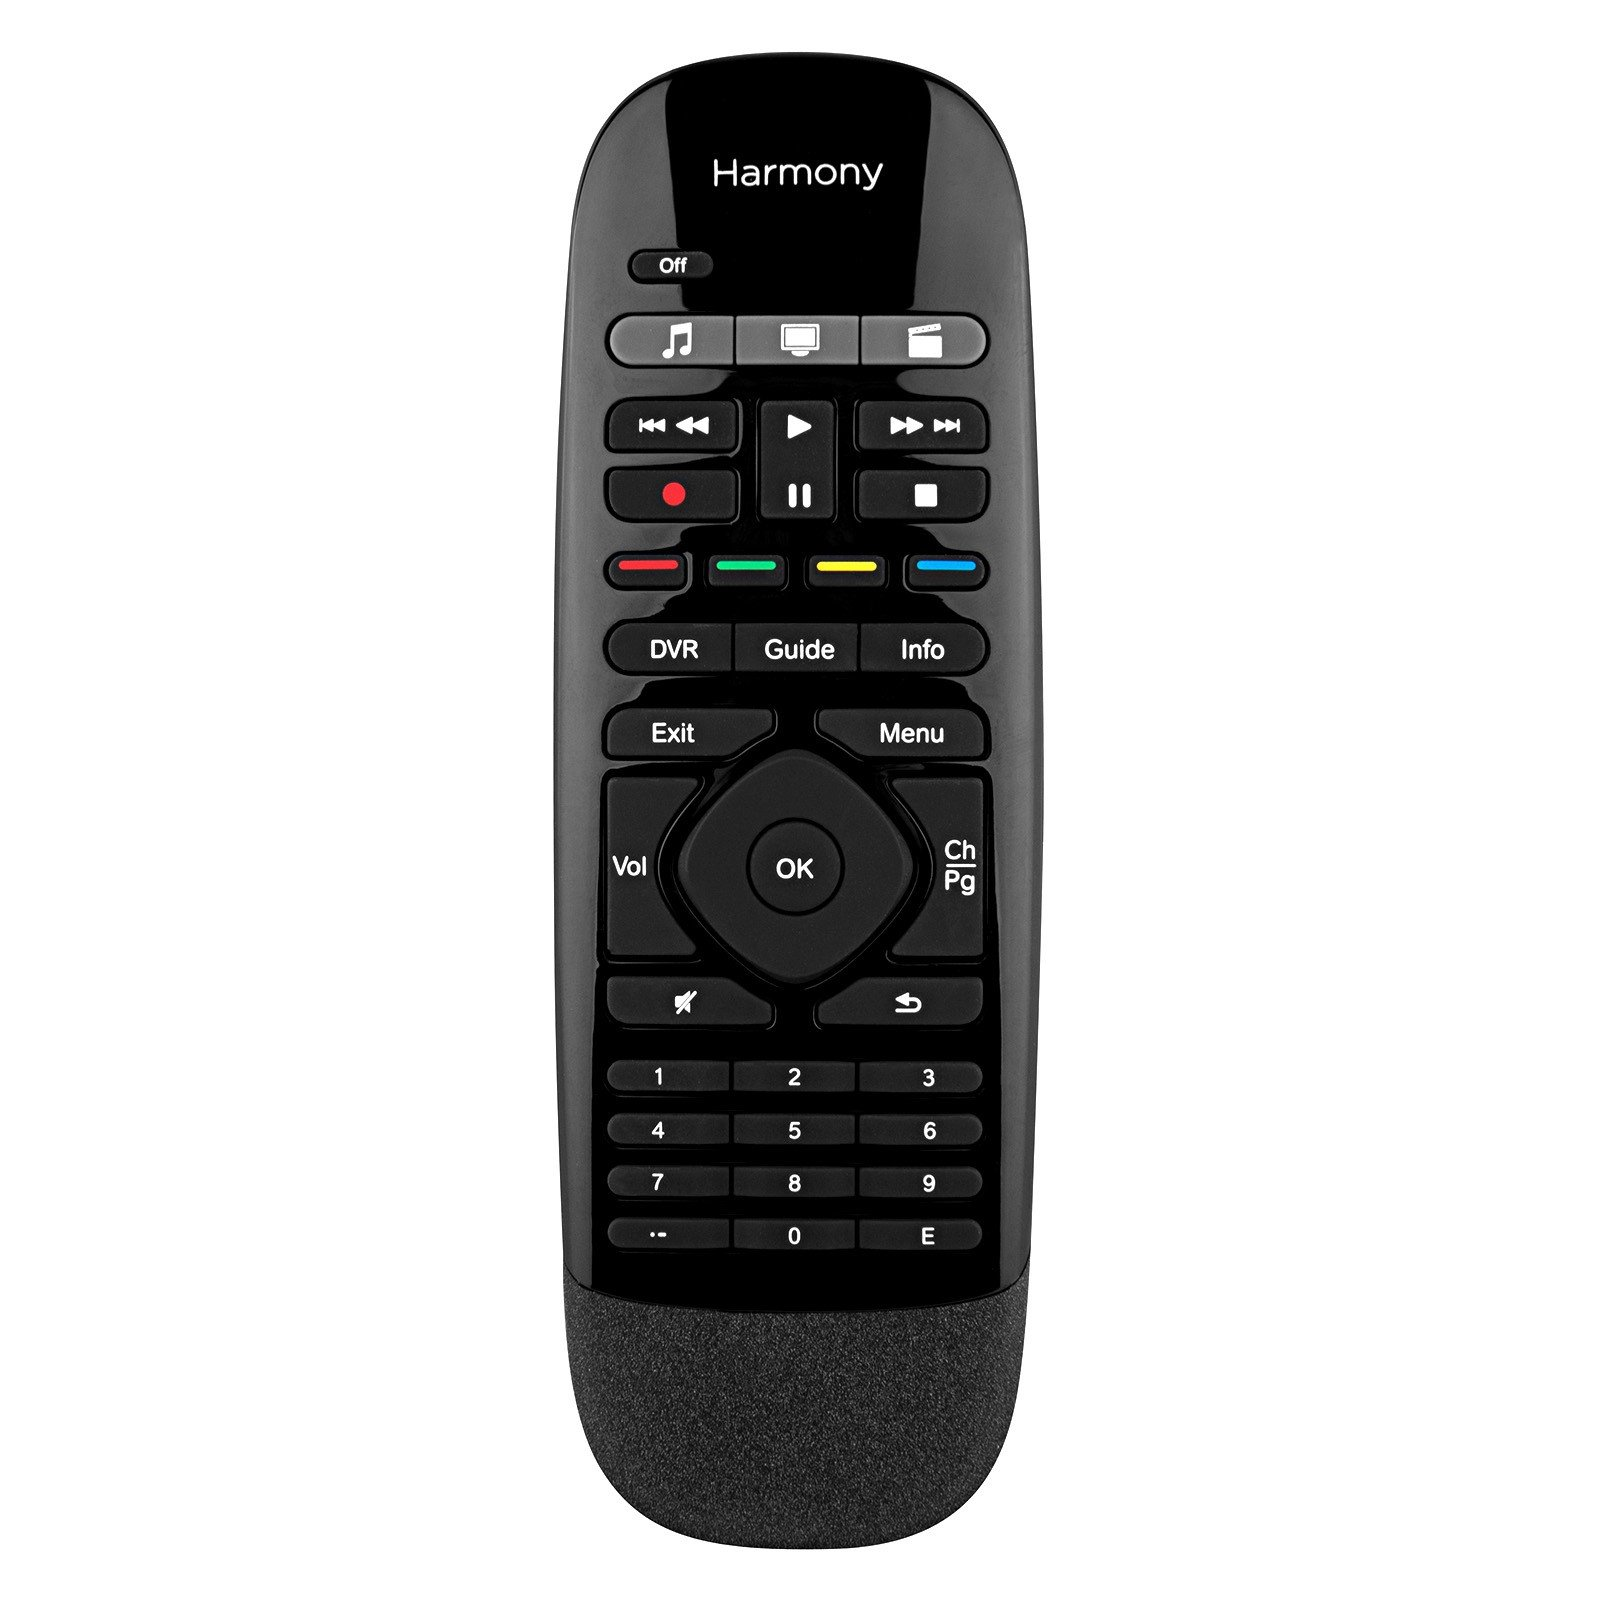 Logitech 915-000194 - Harmony Smart Remote Control with Smartphone App - Black (Certified Refurbished)